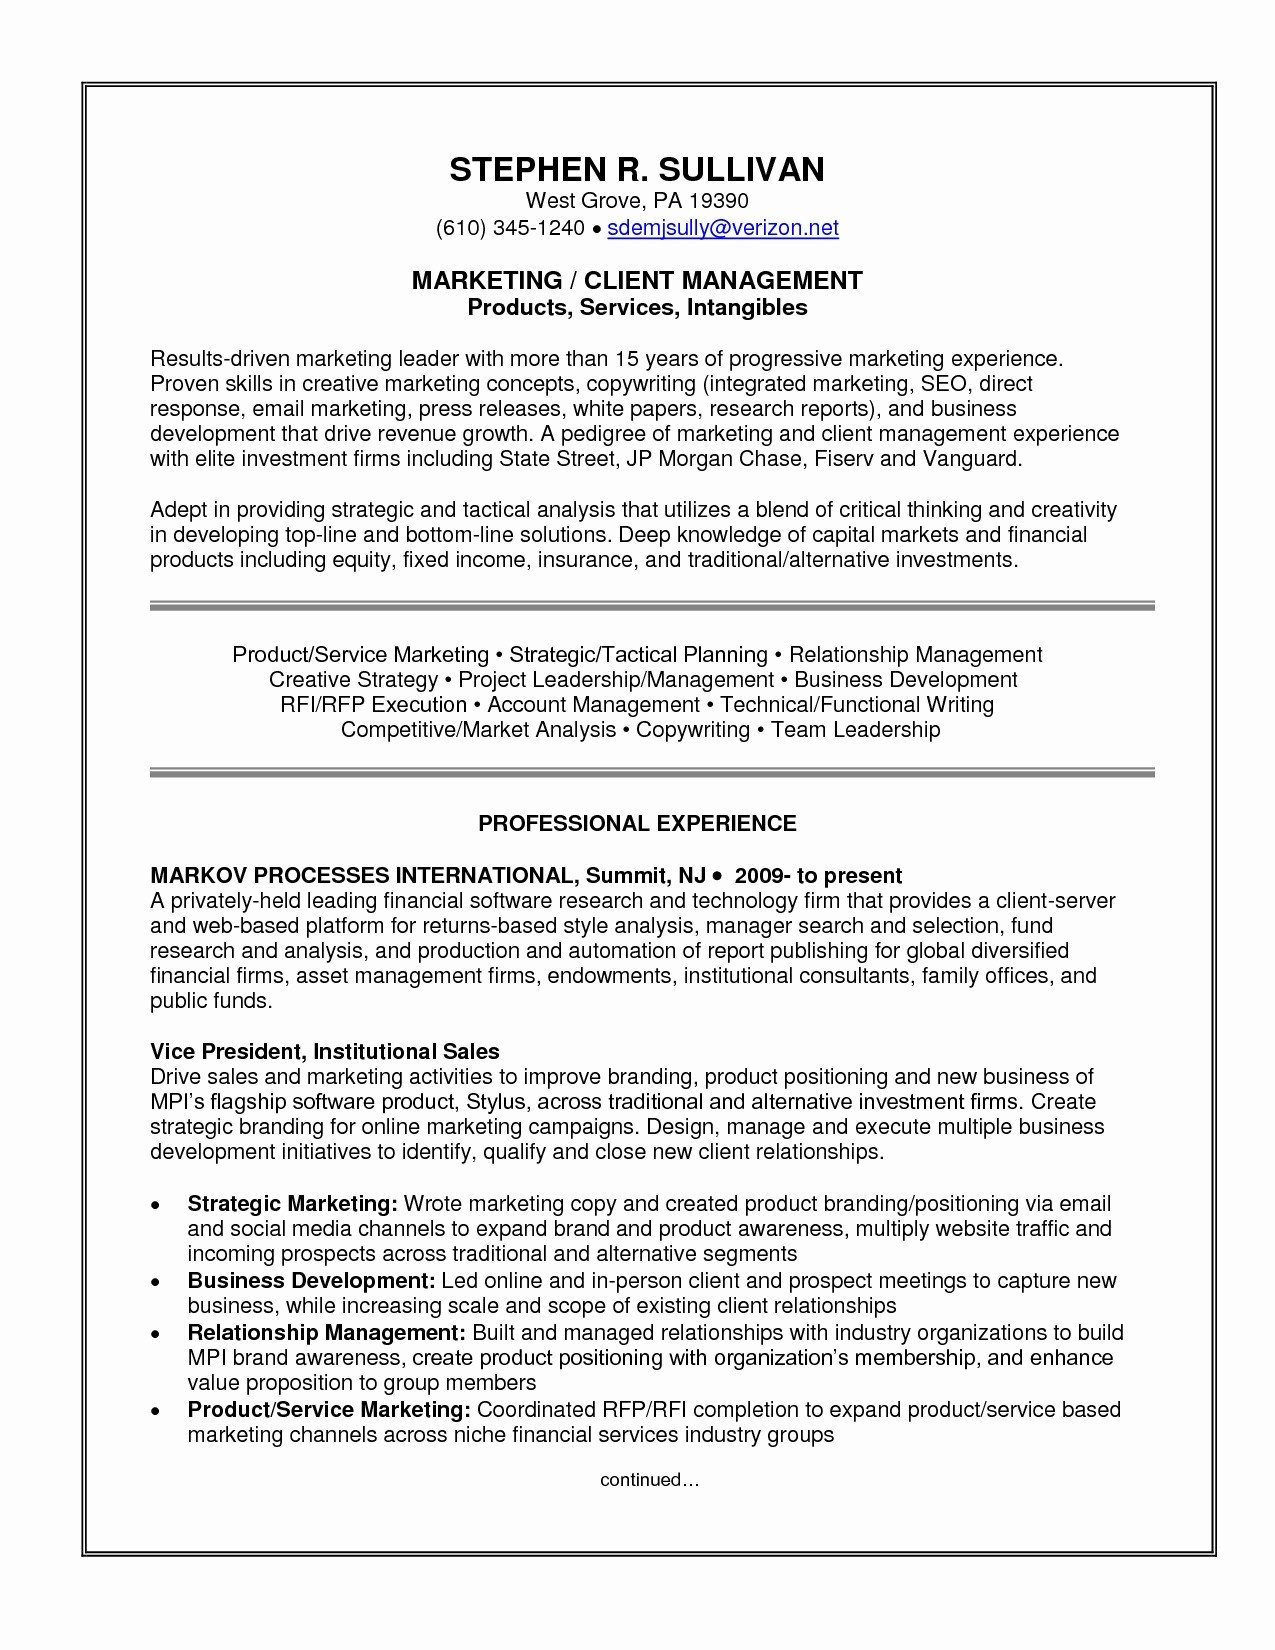 Best Professional Resume - Experienced Professional Resume Template Best top Resume Template